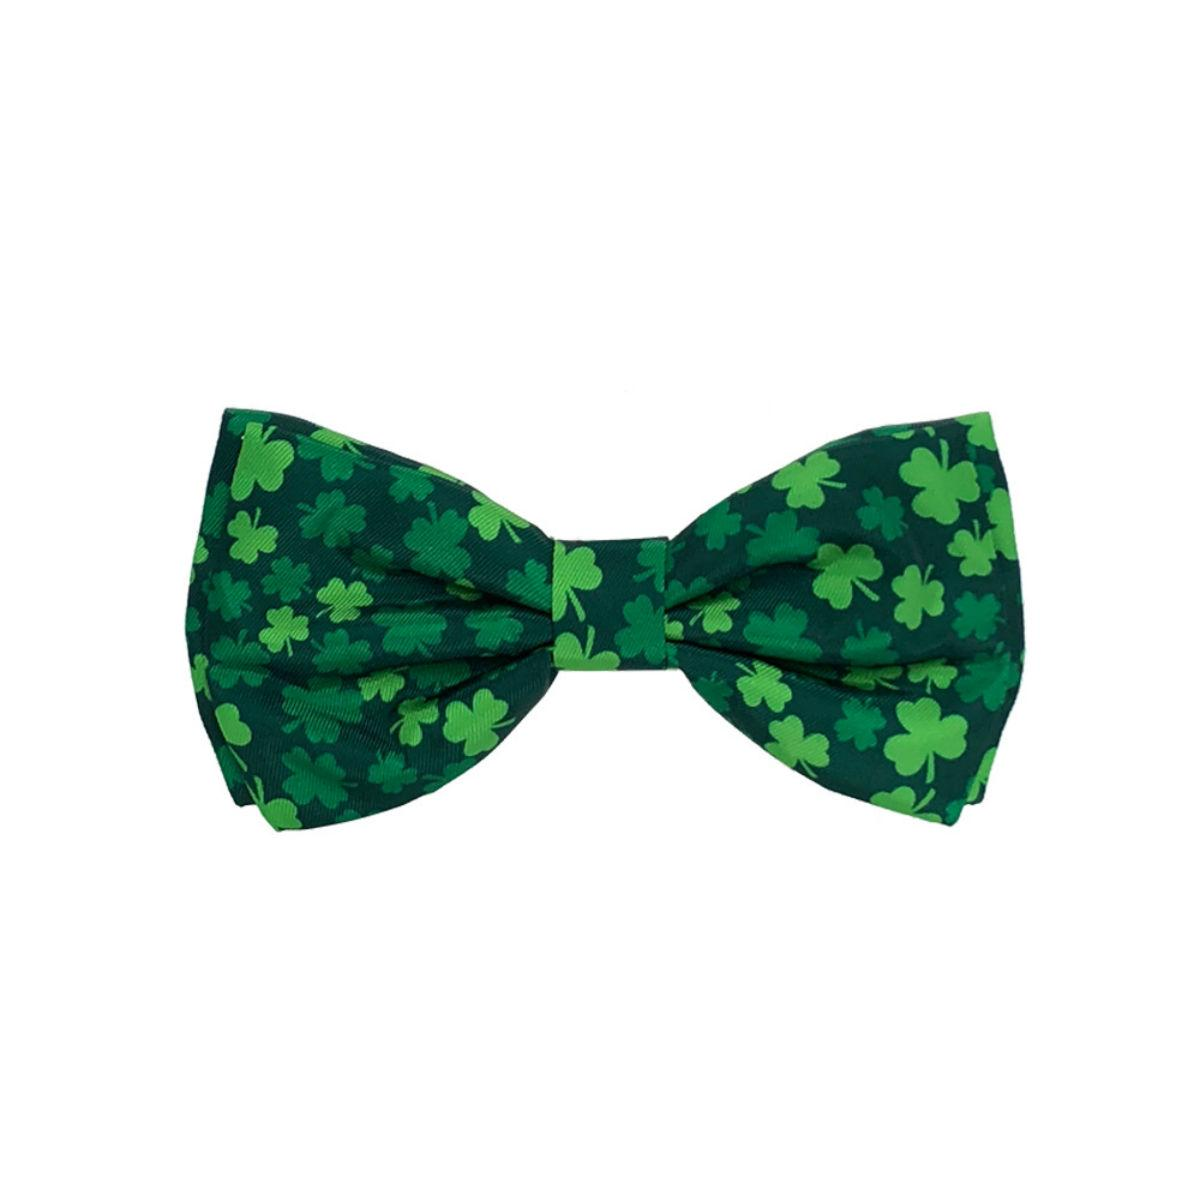 Huxley & Kent Dog and Cat Bow Tie Collar Attachment - Lucky Shamrock